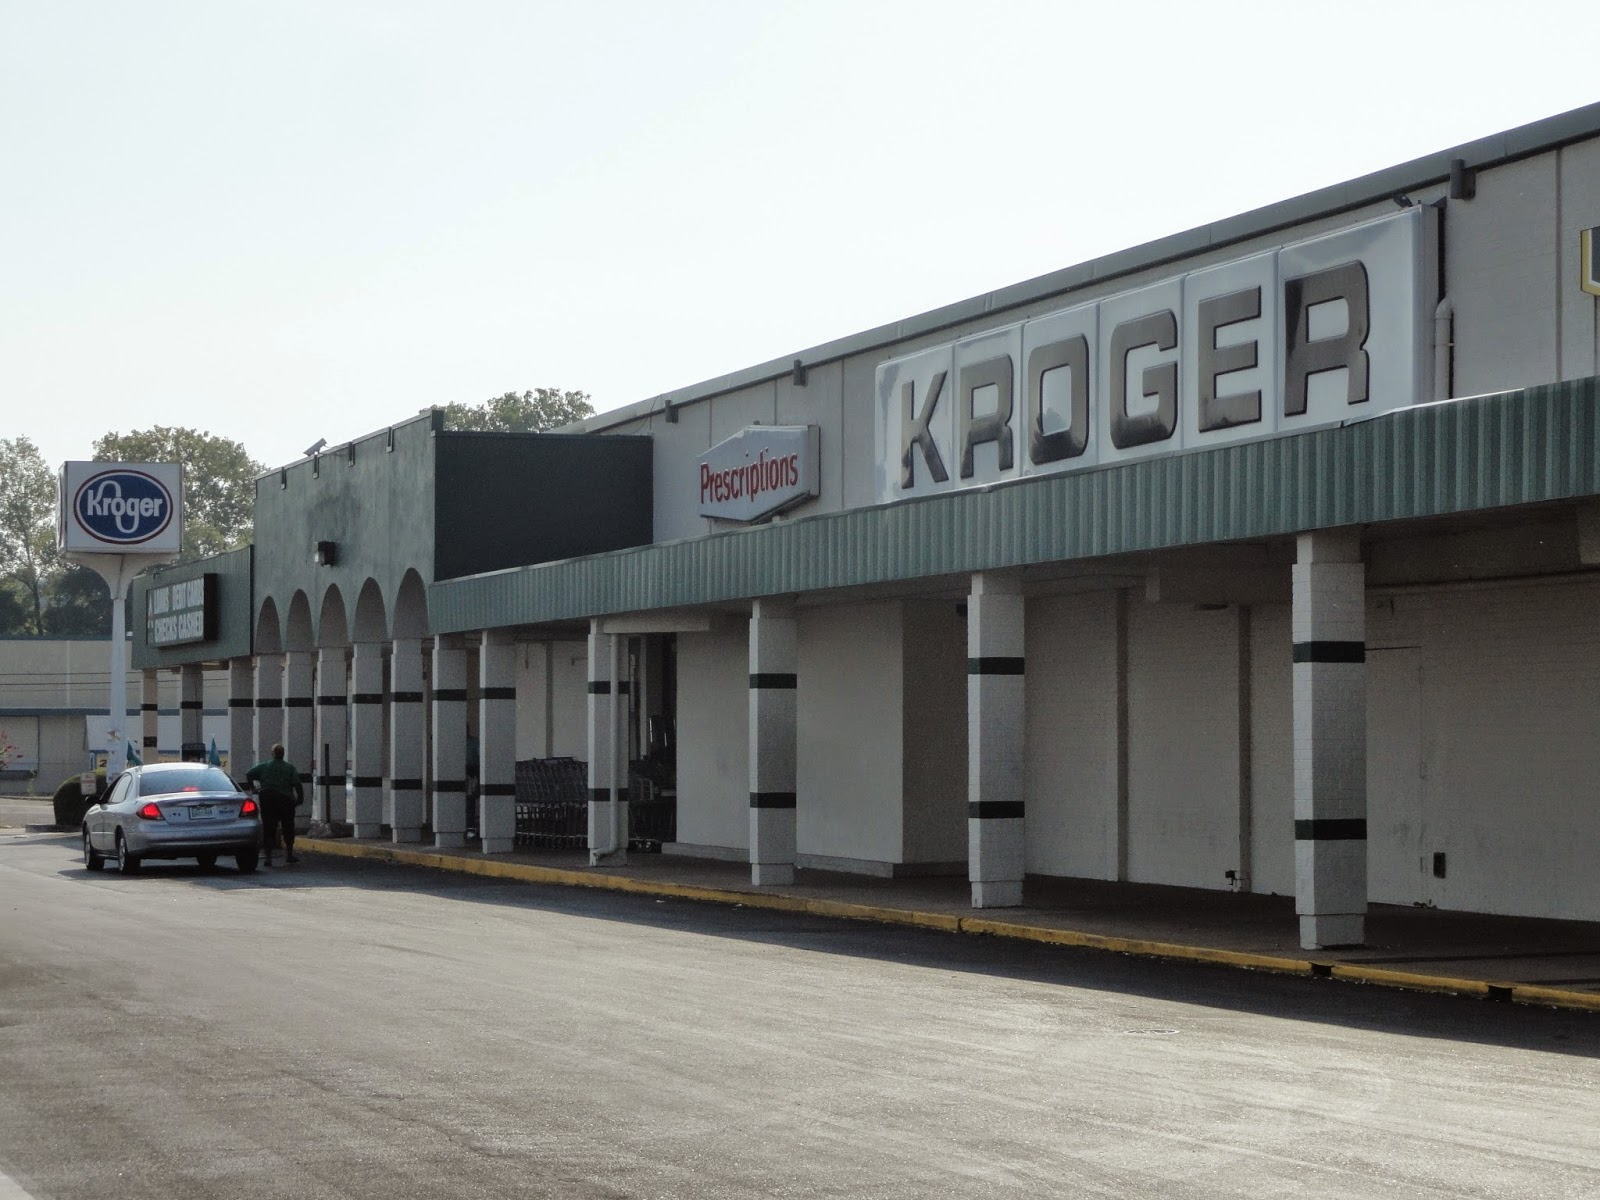 6e7932db At 60 years old this year, the Southgate Kroger is currently the oldest  Kroger store in the city. It is more than 10 years older than the 1965  structure on ...